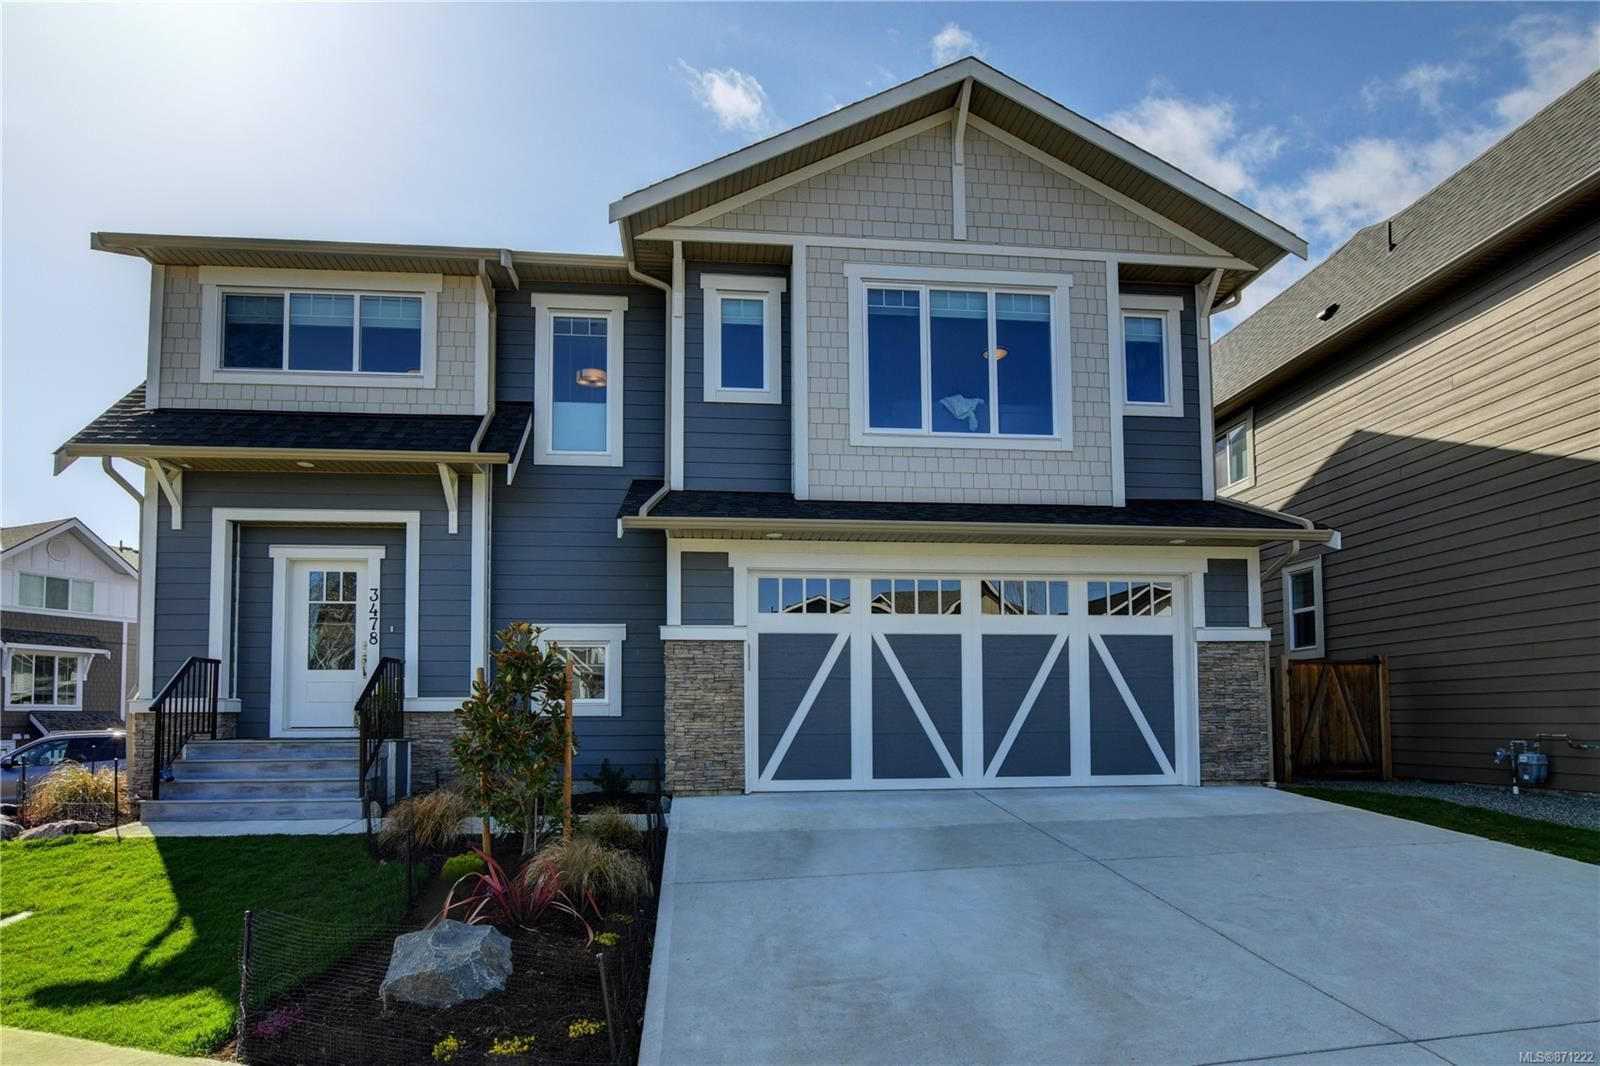 Main Photo: 3478 Curlew St in : Co Royal Bay House for sale (Colwood)  : MLS®# 871222